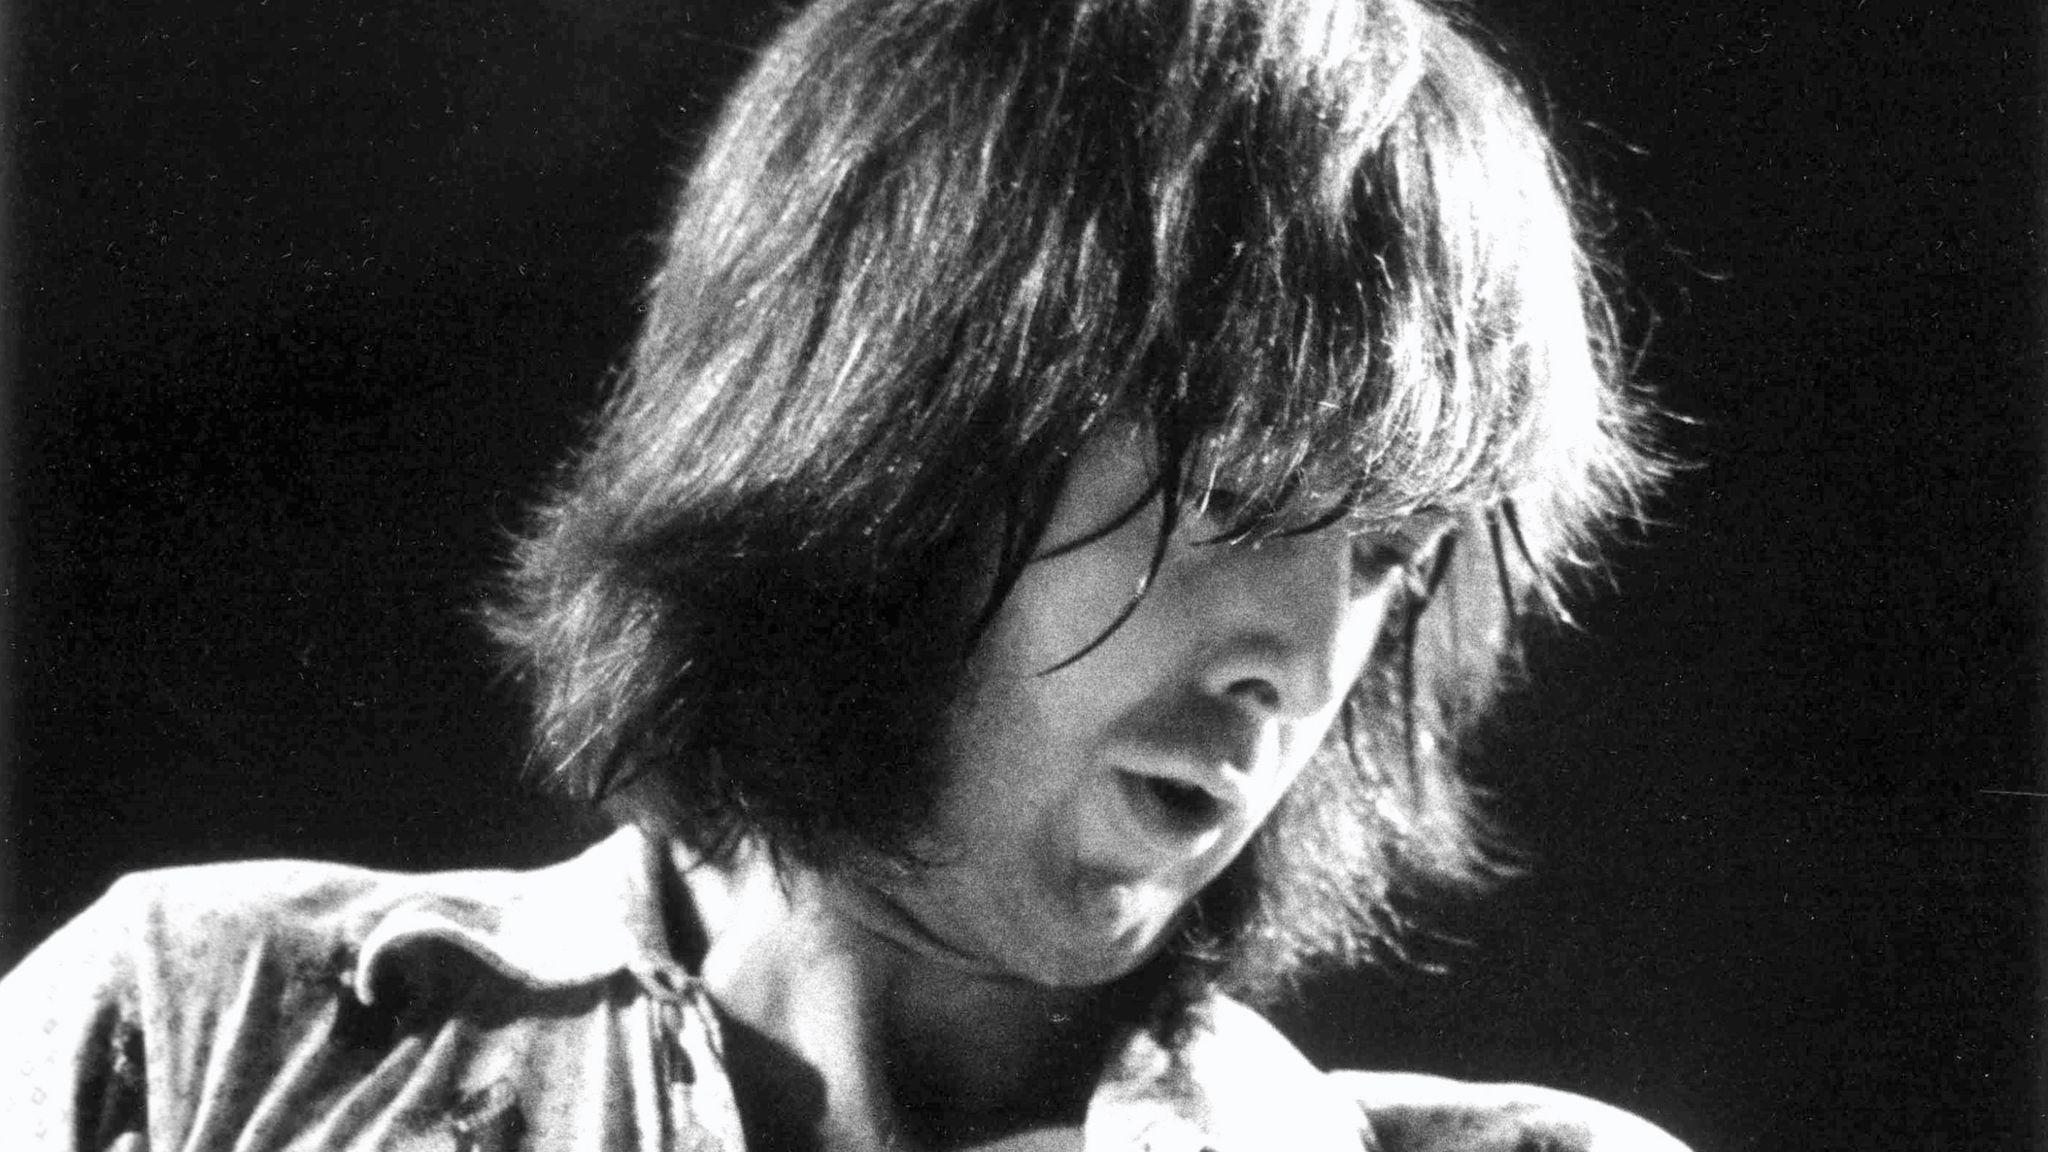 Spencer Davis, performing live on stage at Alexandra Palace, London on 2nd August 1973